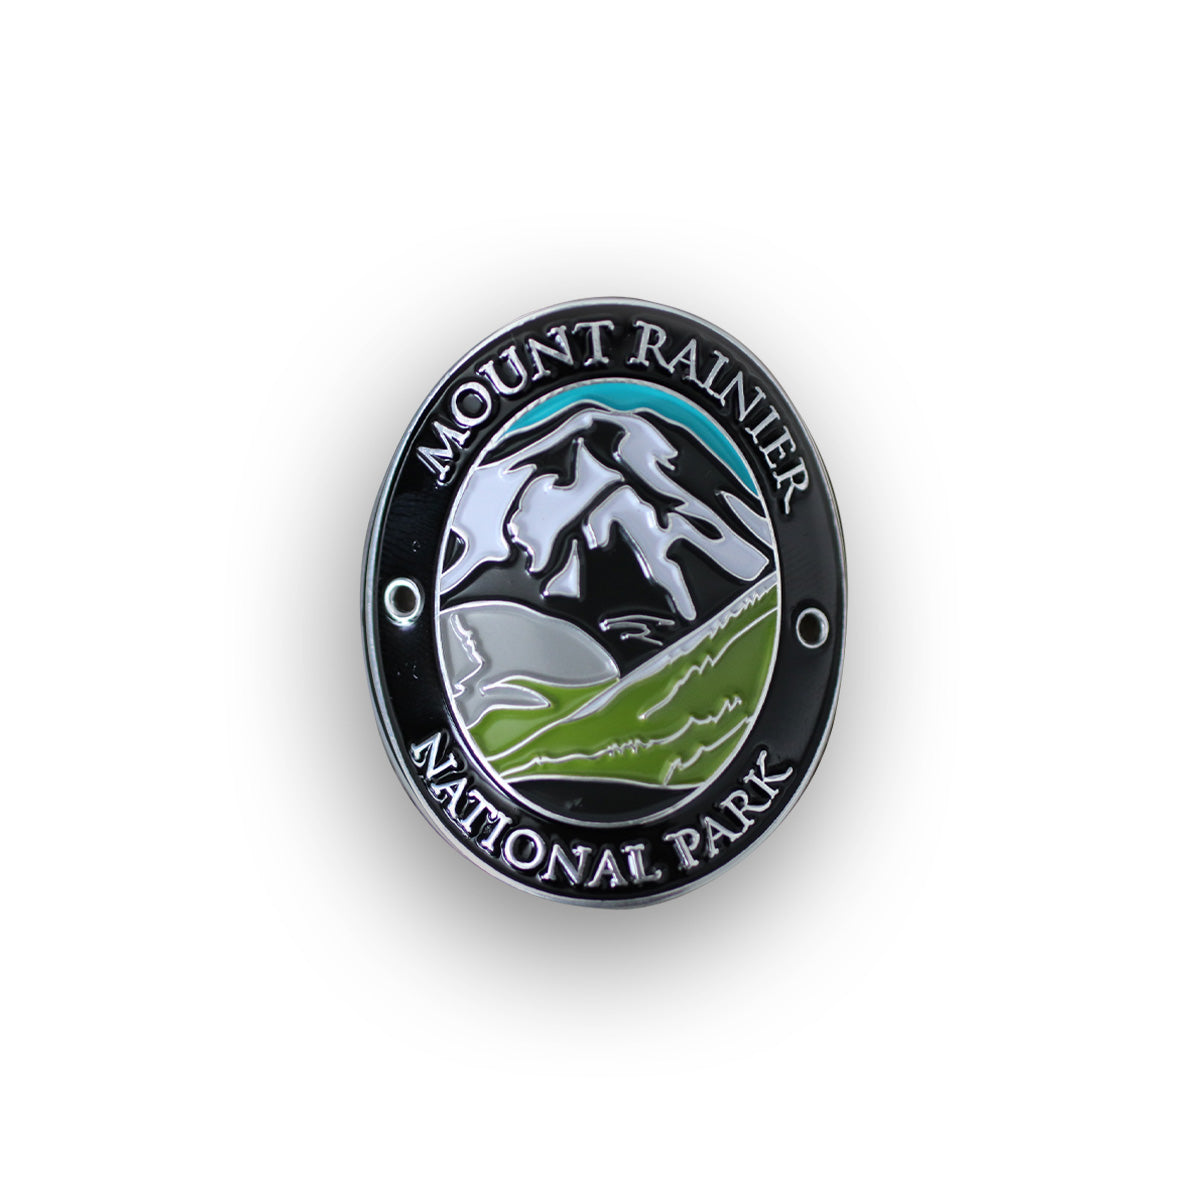 Mount Rainier National Park Traveler Walking Stick Medallion